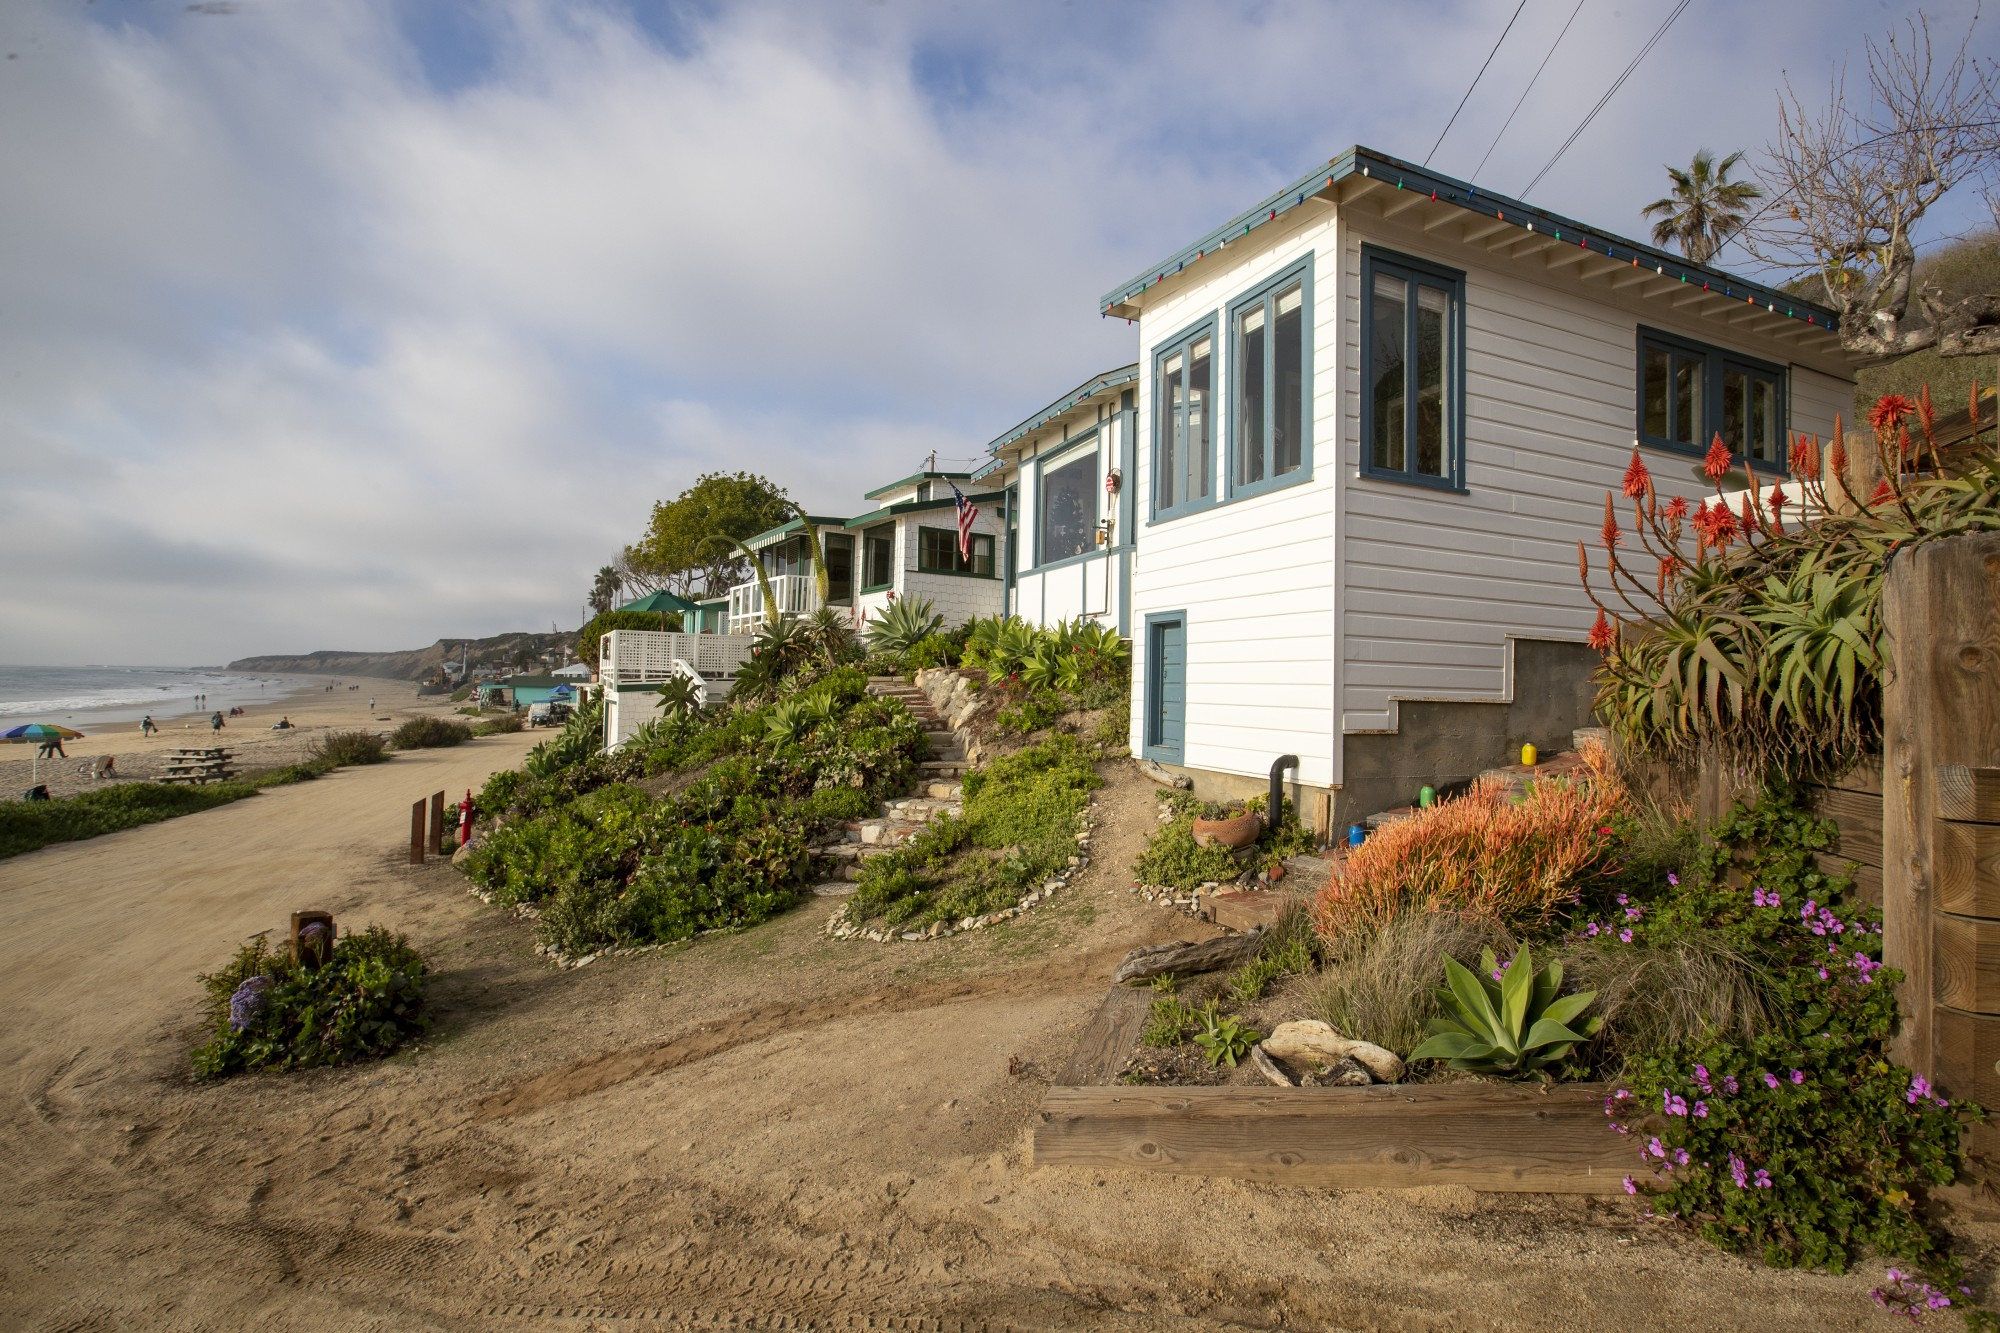 Cottage 21, foreground, and Cottage 17, two doors down, at Crystal Cove State Park are seen in this undated photo. .The cottages are rented to California parks department employees at below-market rates under a program created to allow essential workers to live close to the natural treasures they protect or maintain. (Allen J. Schaben / Los Angeles Times)